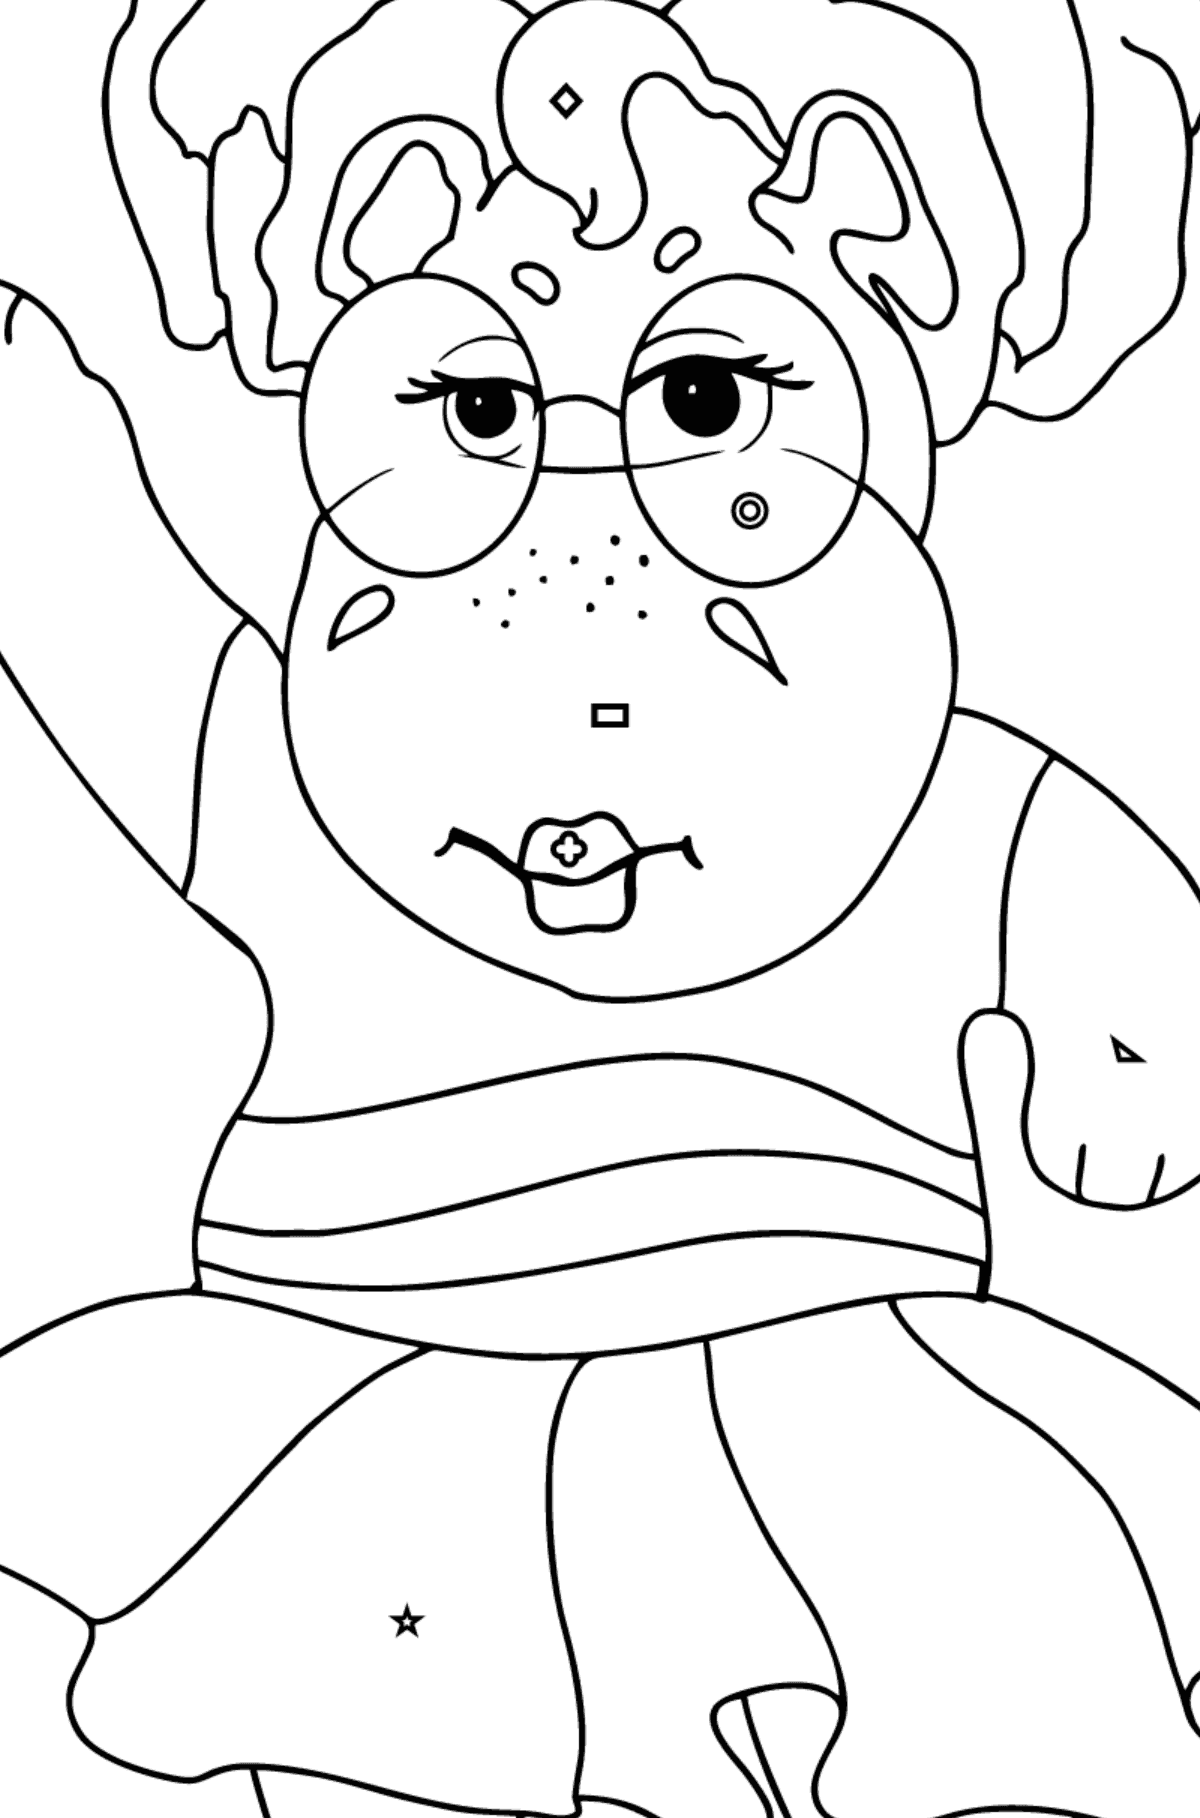 Coloring Page - A Hippo is Dancing in Sunglasses for Kids  - Color by Geometric Shapes